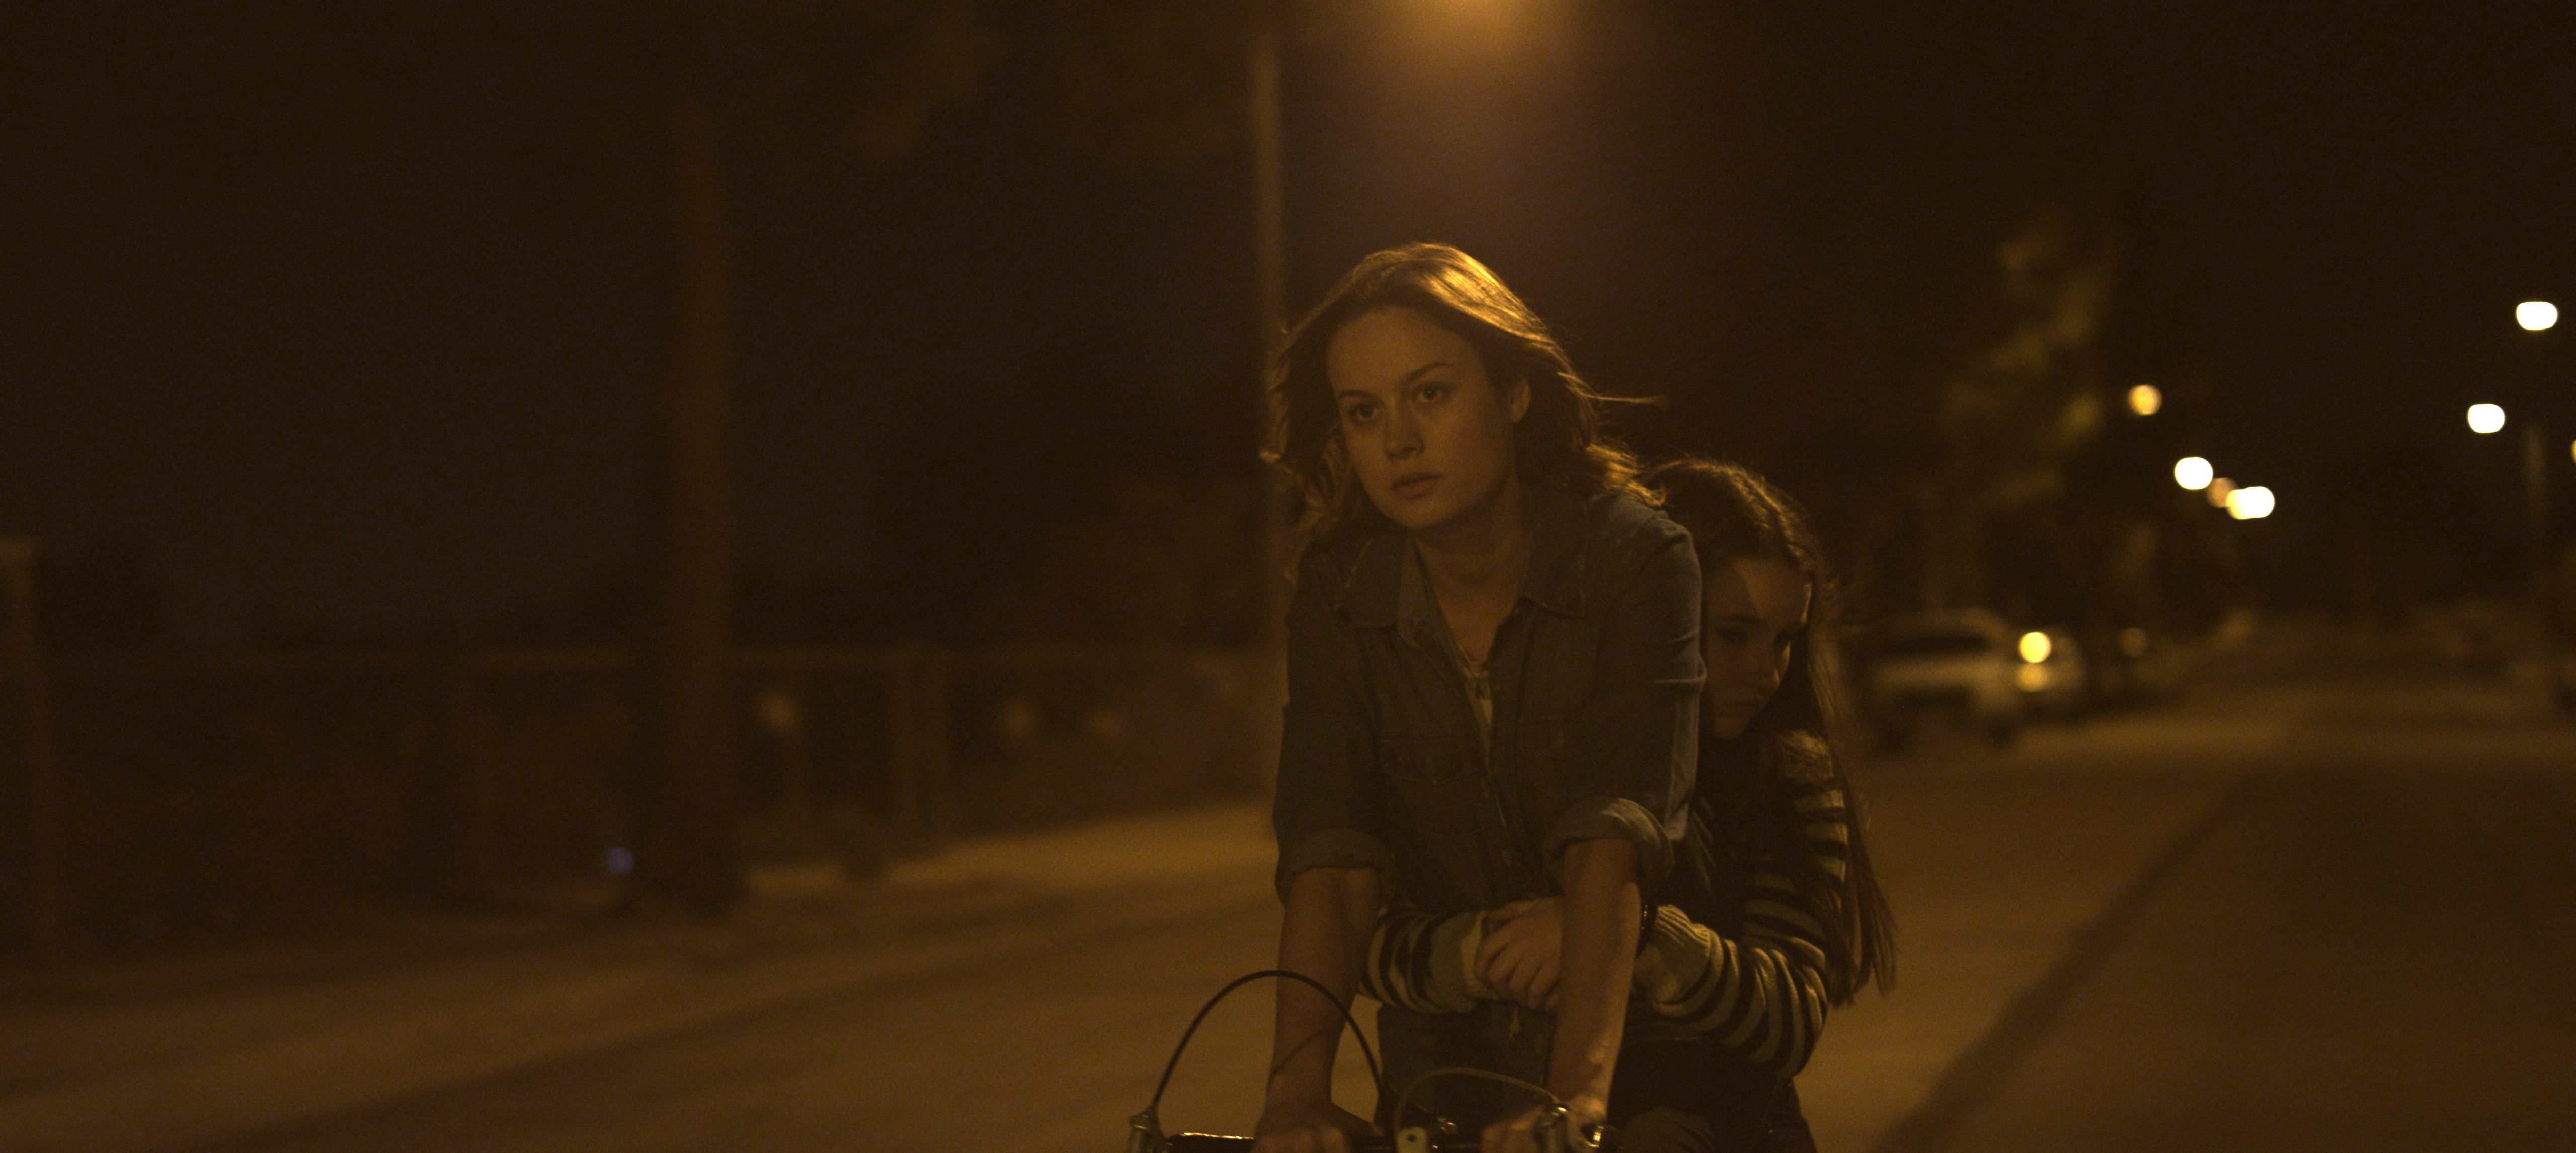 An image from Short Term 12